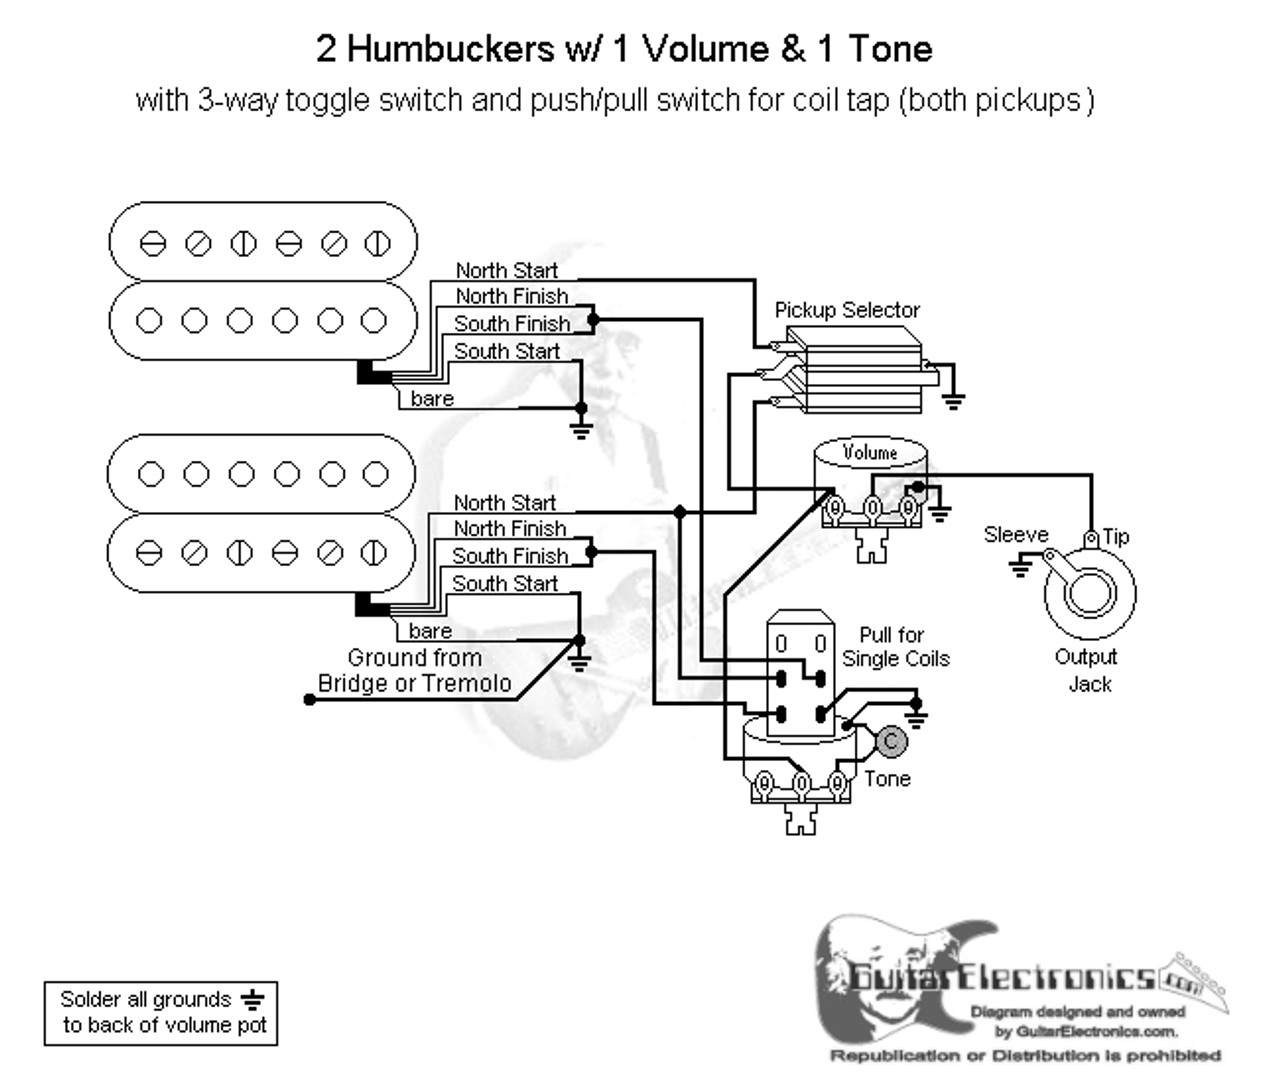 2 humbuckers 3 way toggle switch 1 volume 1 tone coil tap 3-Way Switch Diagram Light